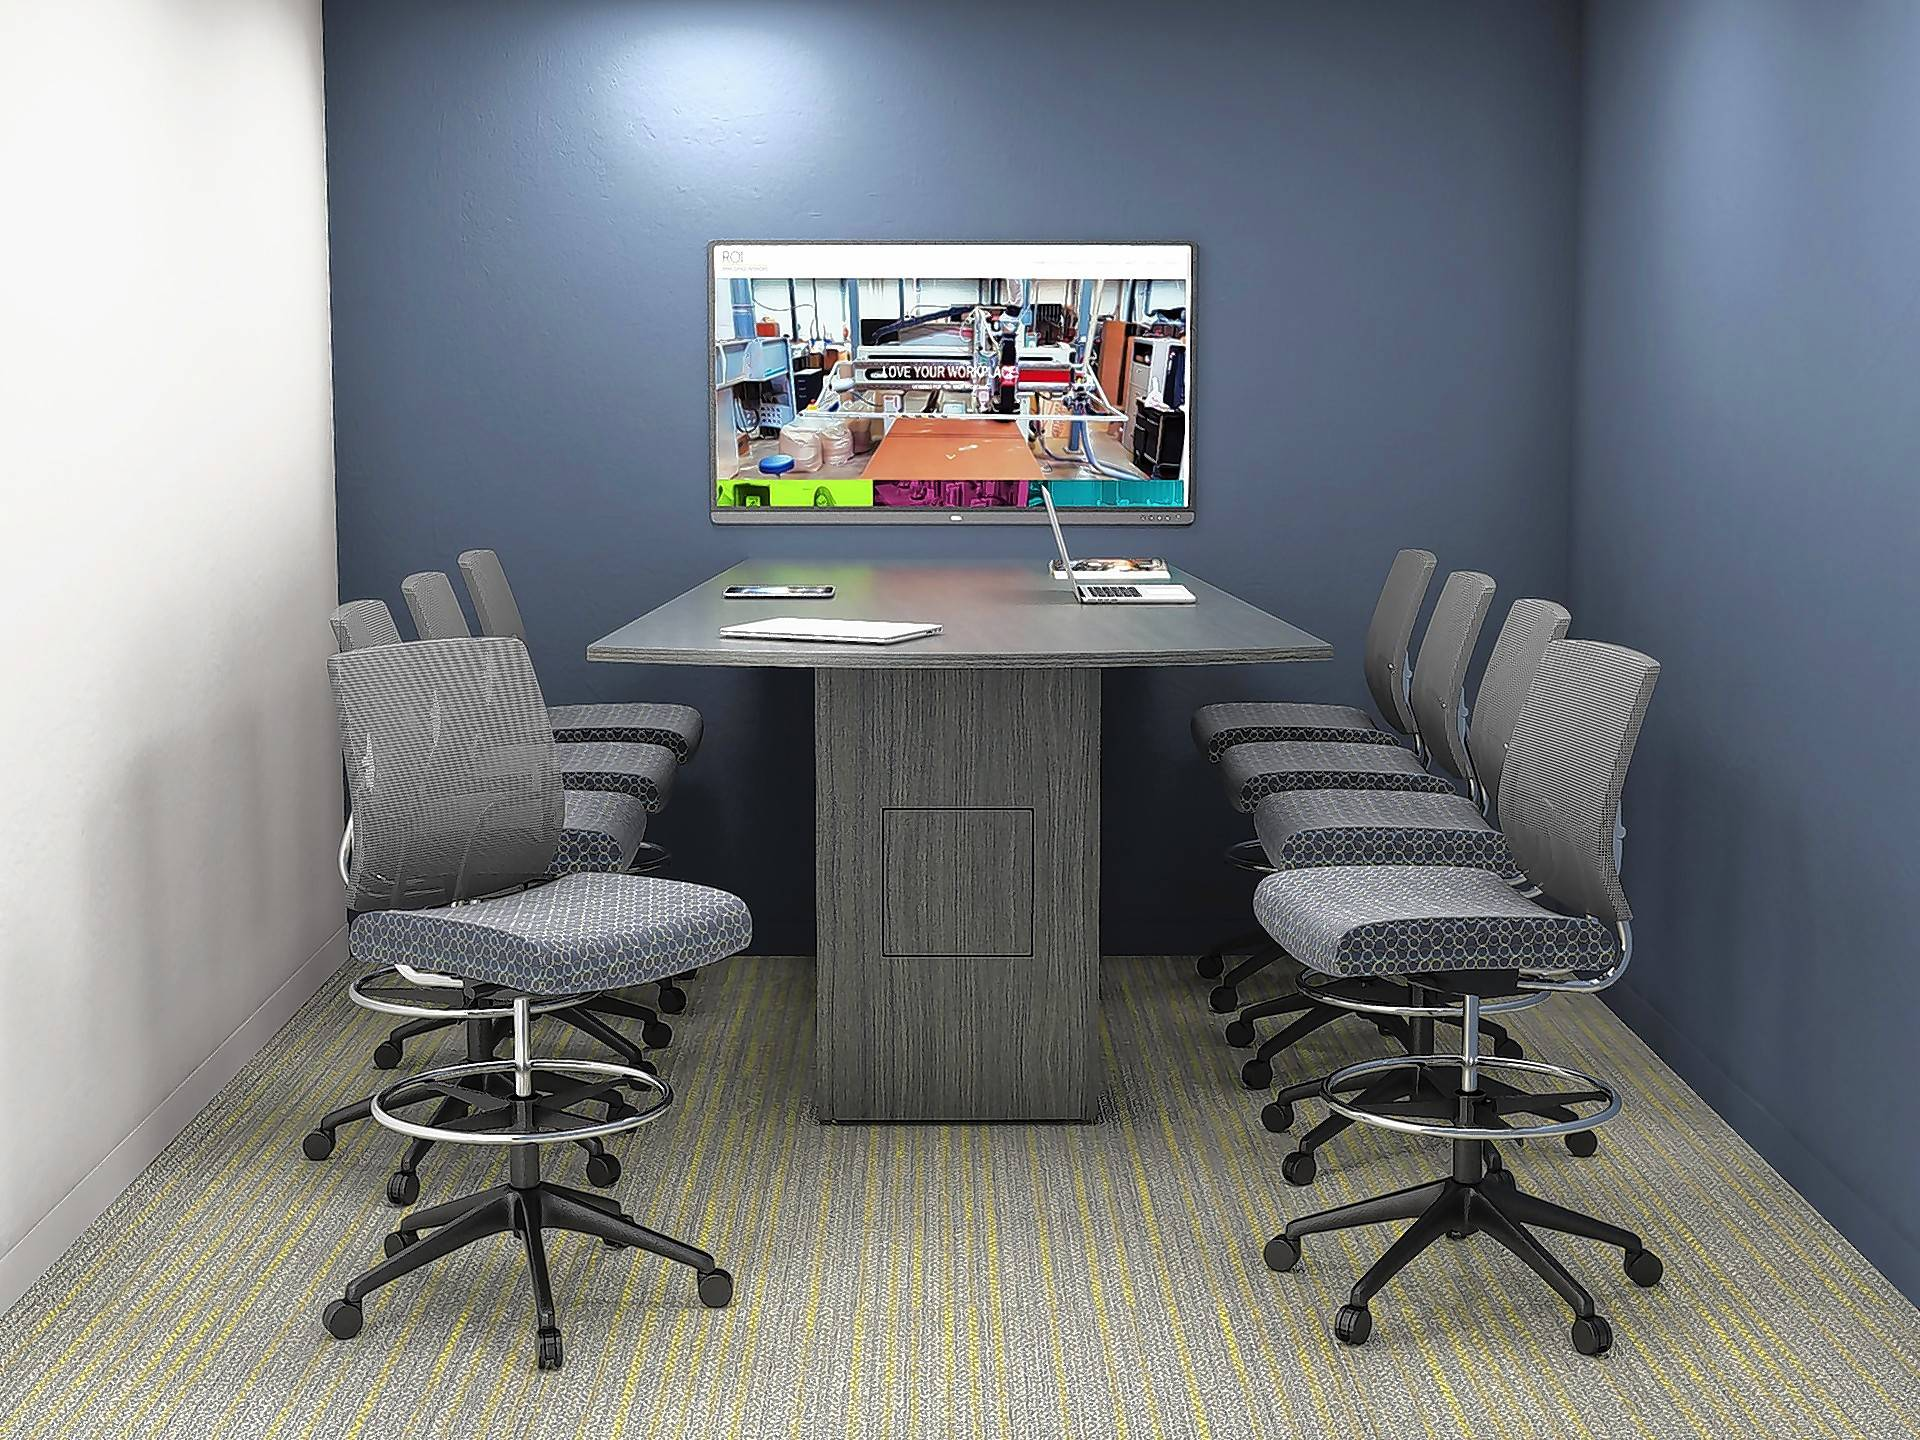 Meeting rooms can be places where employees are excited to gather and share ideas, complete with wall-mounted video equipment for calling in off-site attendees, or displaying presentations.